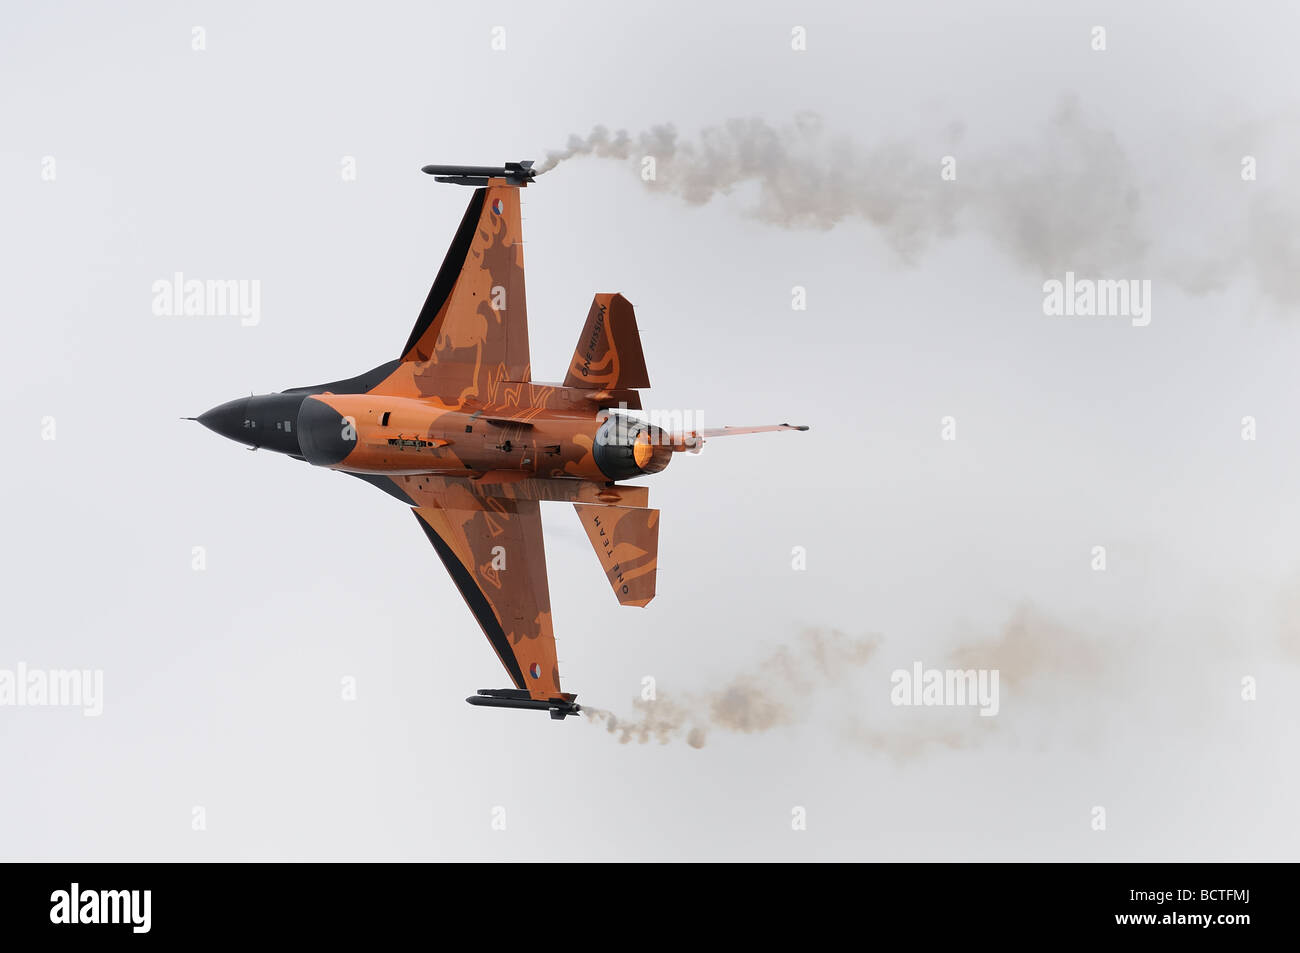 Royal Netherlands Air Force Koninklijke Luchtmacht  F-16AM Fighting Falcon  putting on an excellent display at the - Stock Image